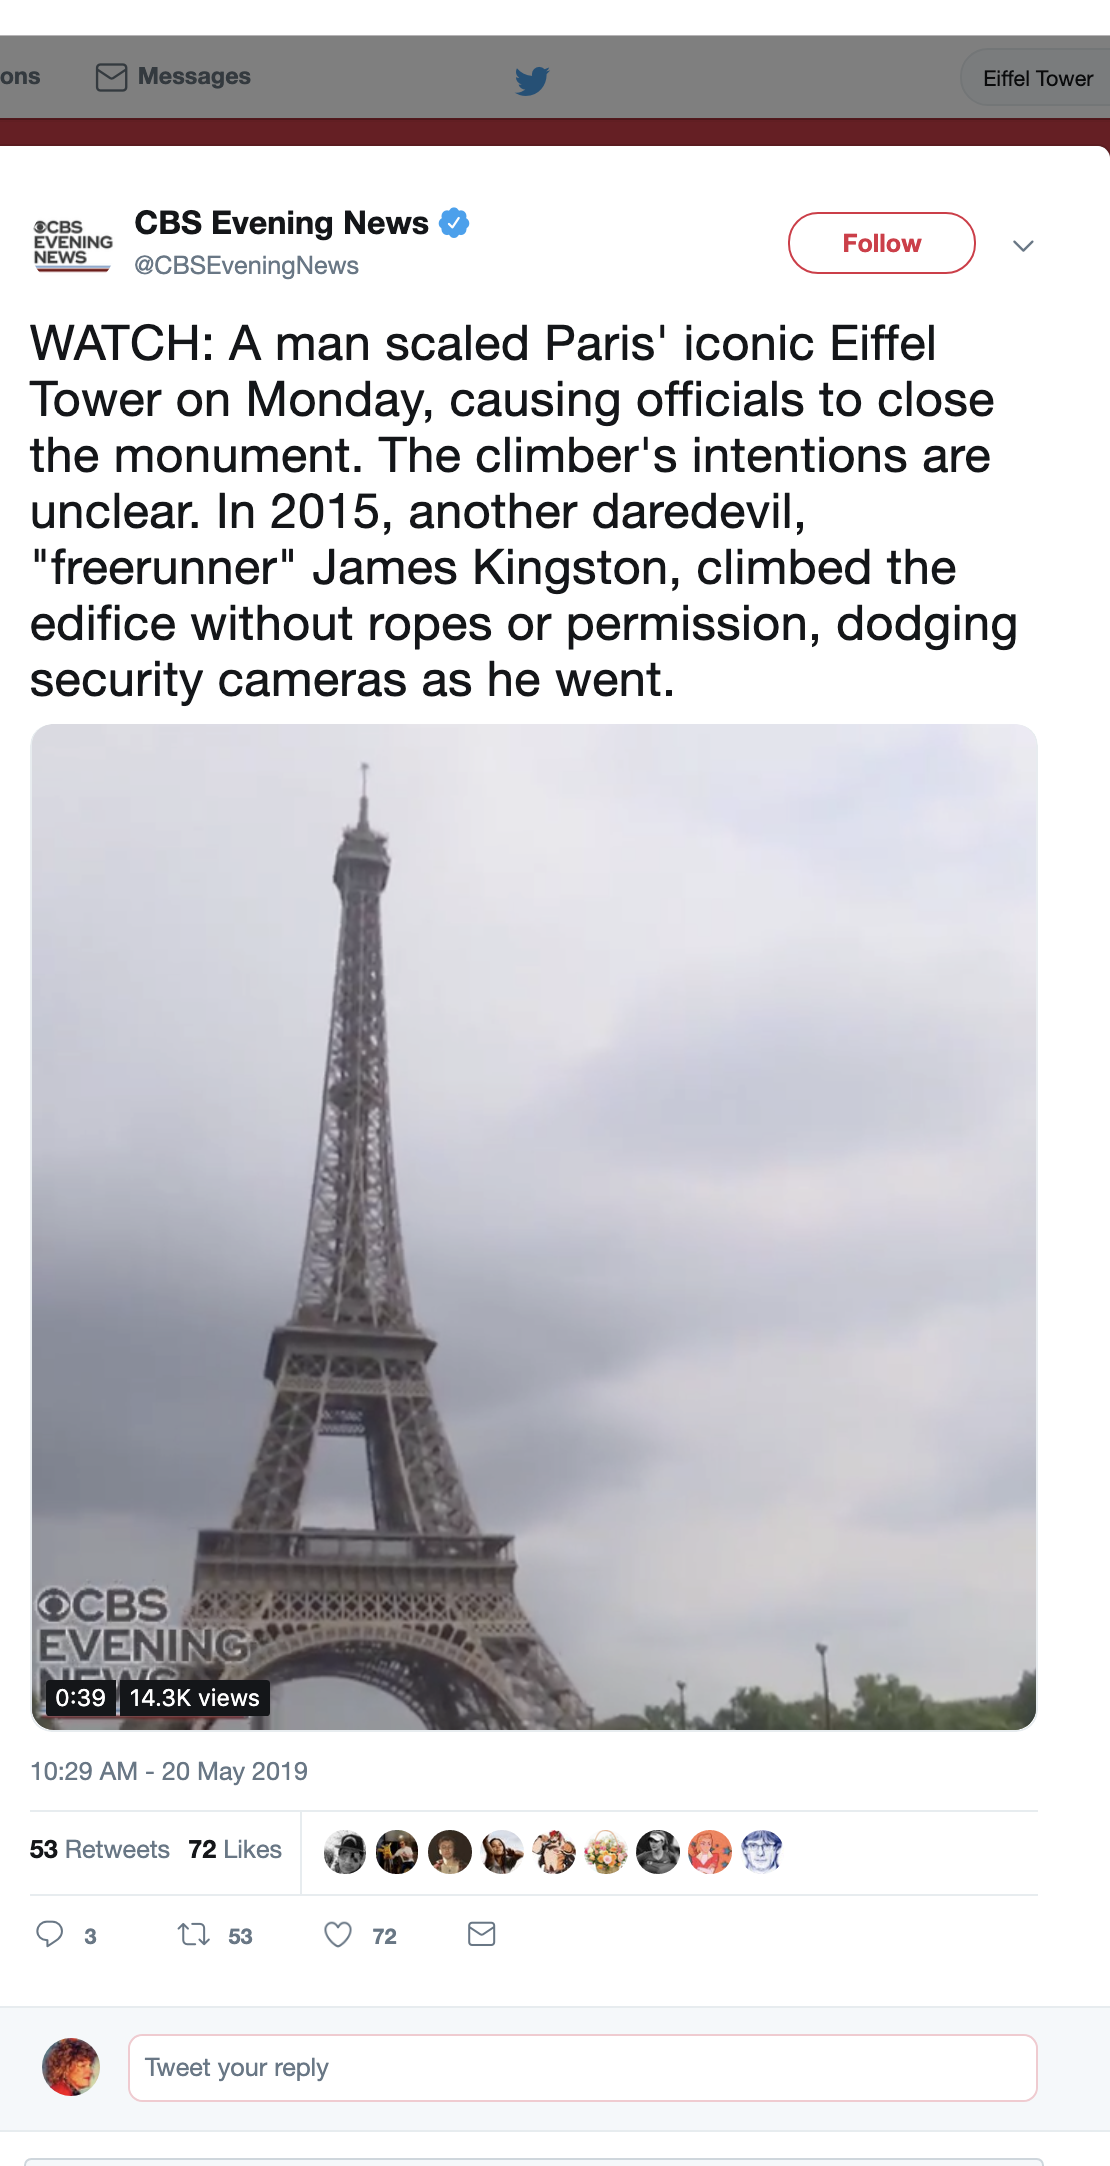 Screen-Shot-2019-05-20-at-12.14.40-PM JUST IN: Police Shut Down Eiffel Tower Shut Over Criminal Act Crime Foreign Policy Social Media Top Stories